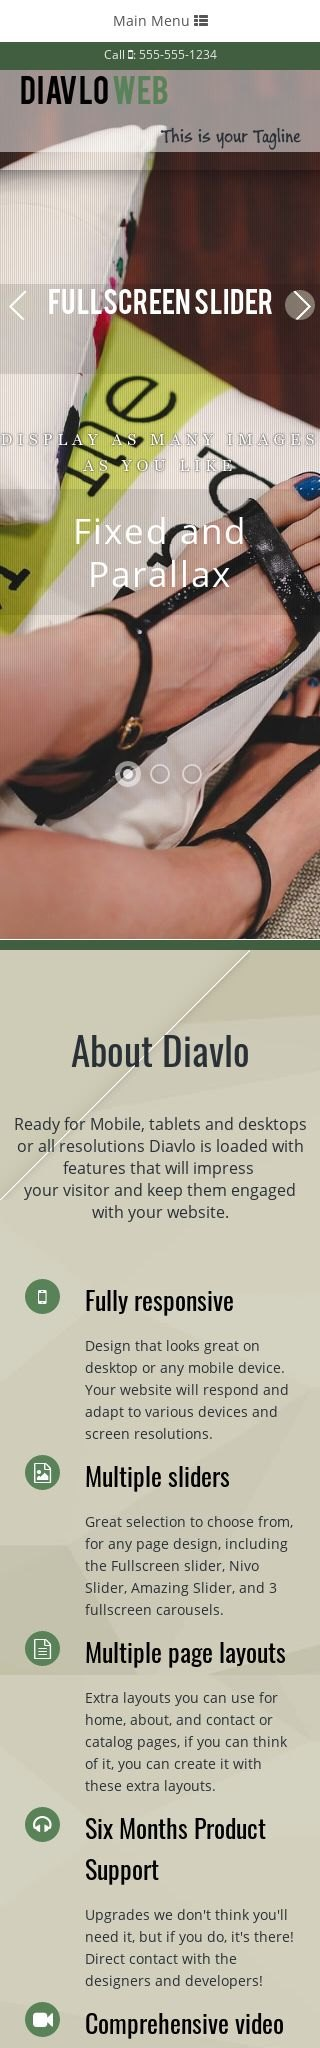 Mobile: Flooring Web Template